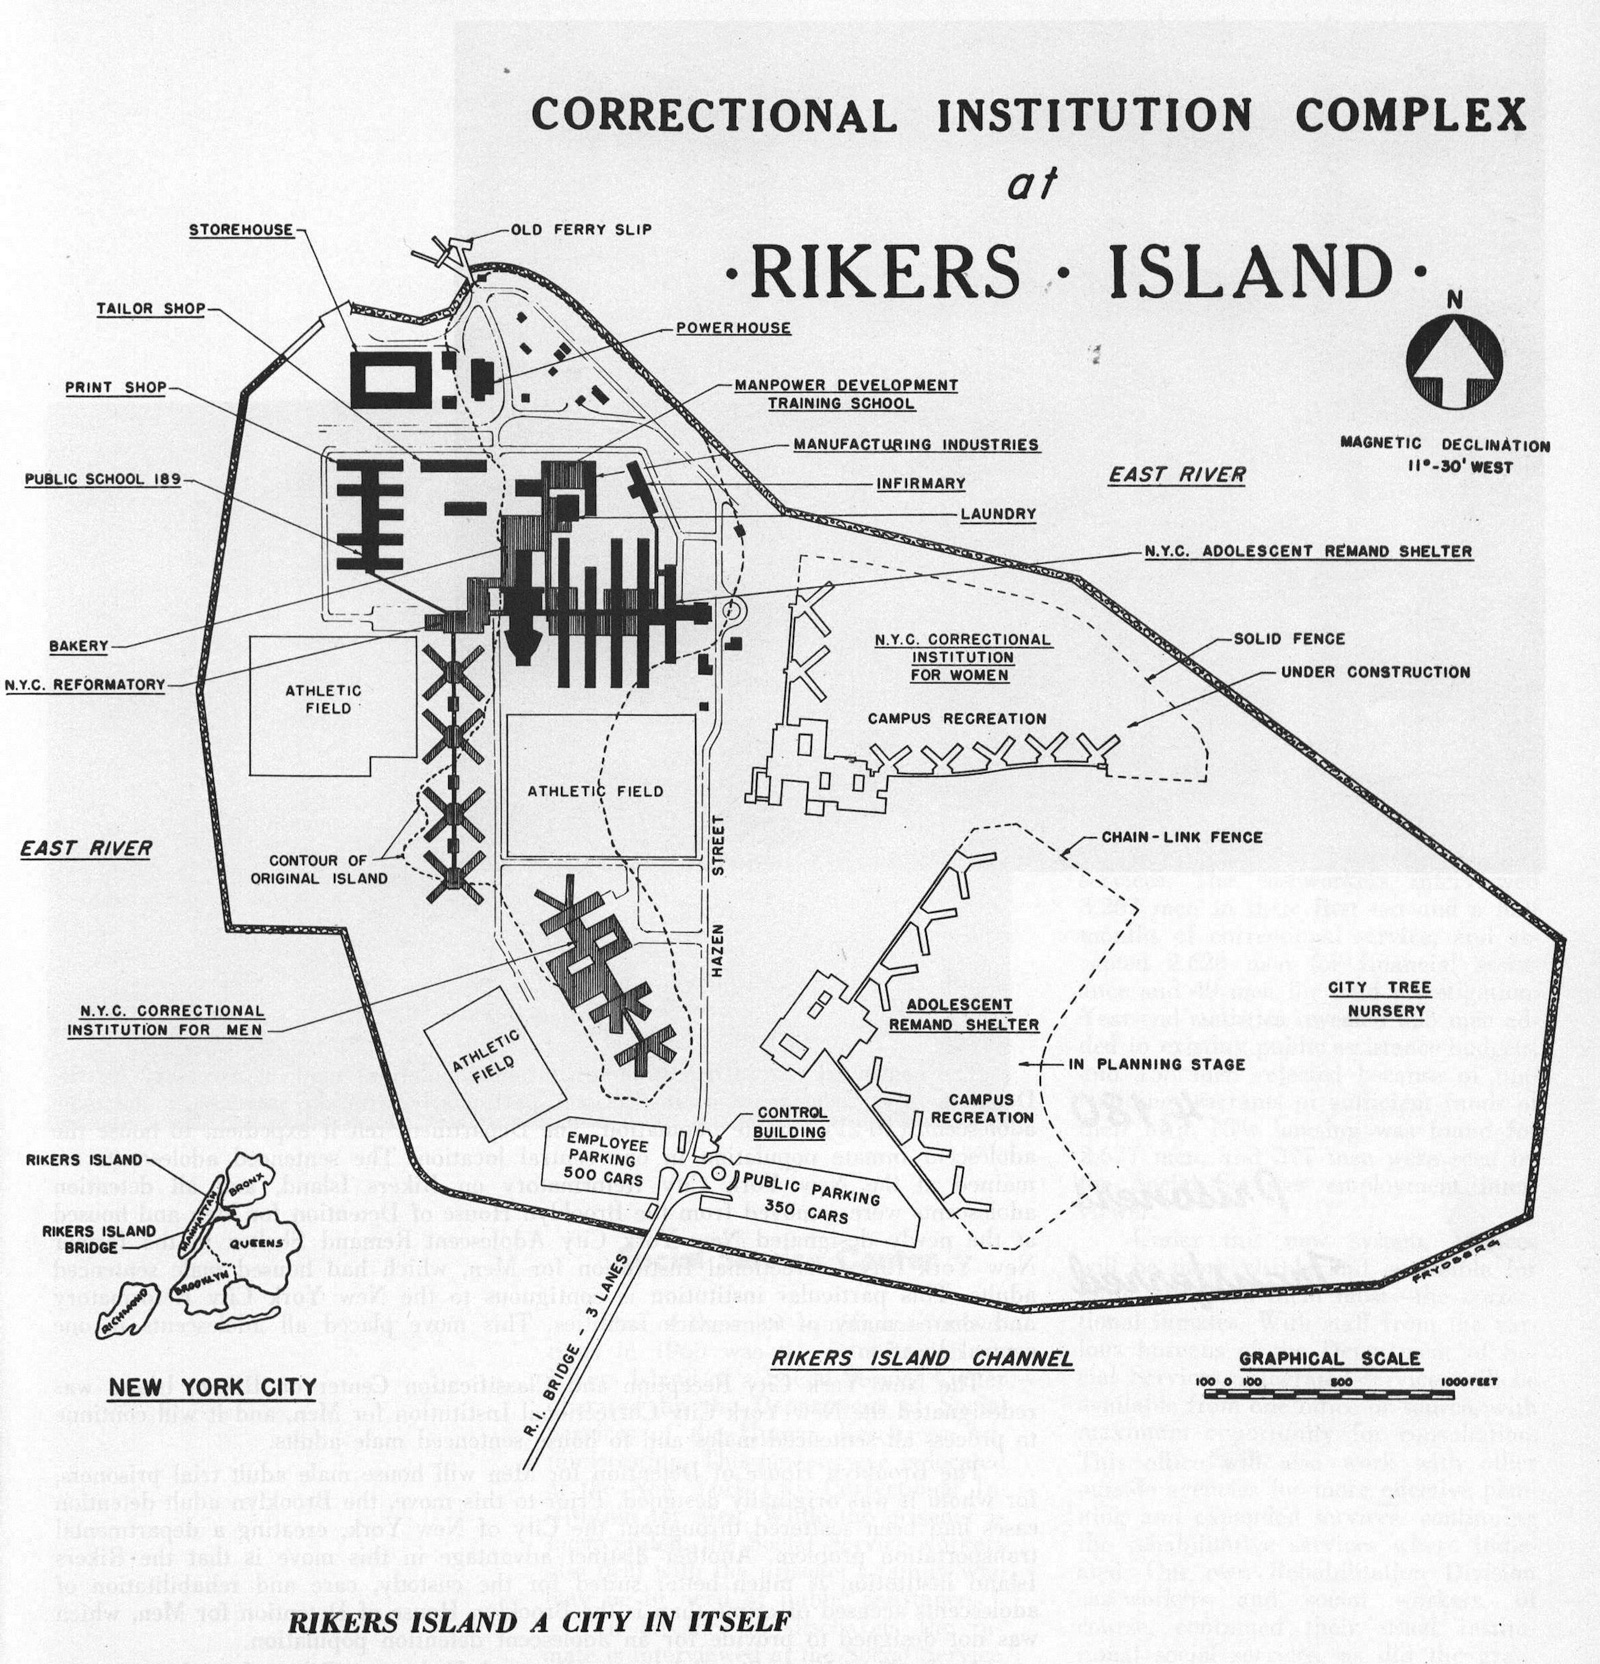 Closing Rikers: Competing Visions for the Future of New